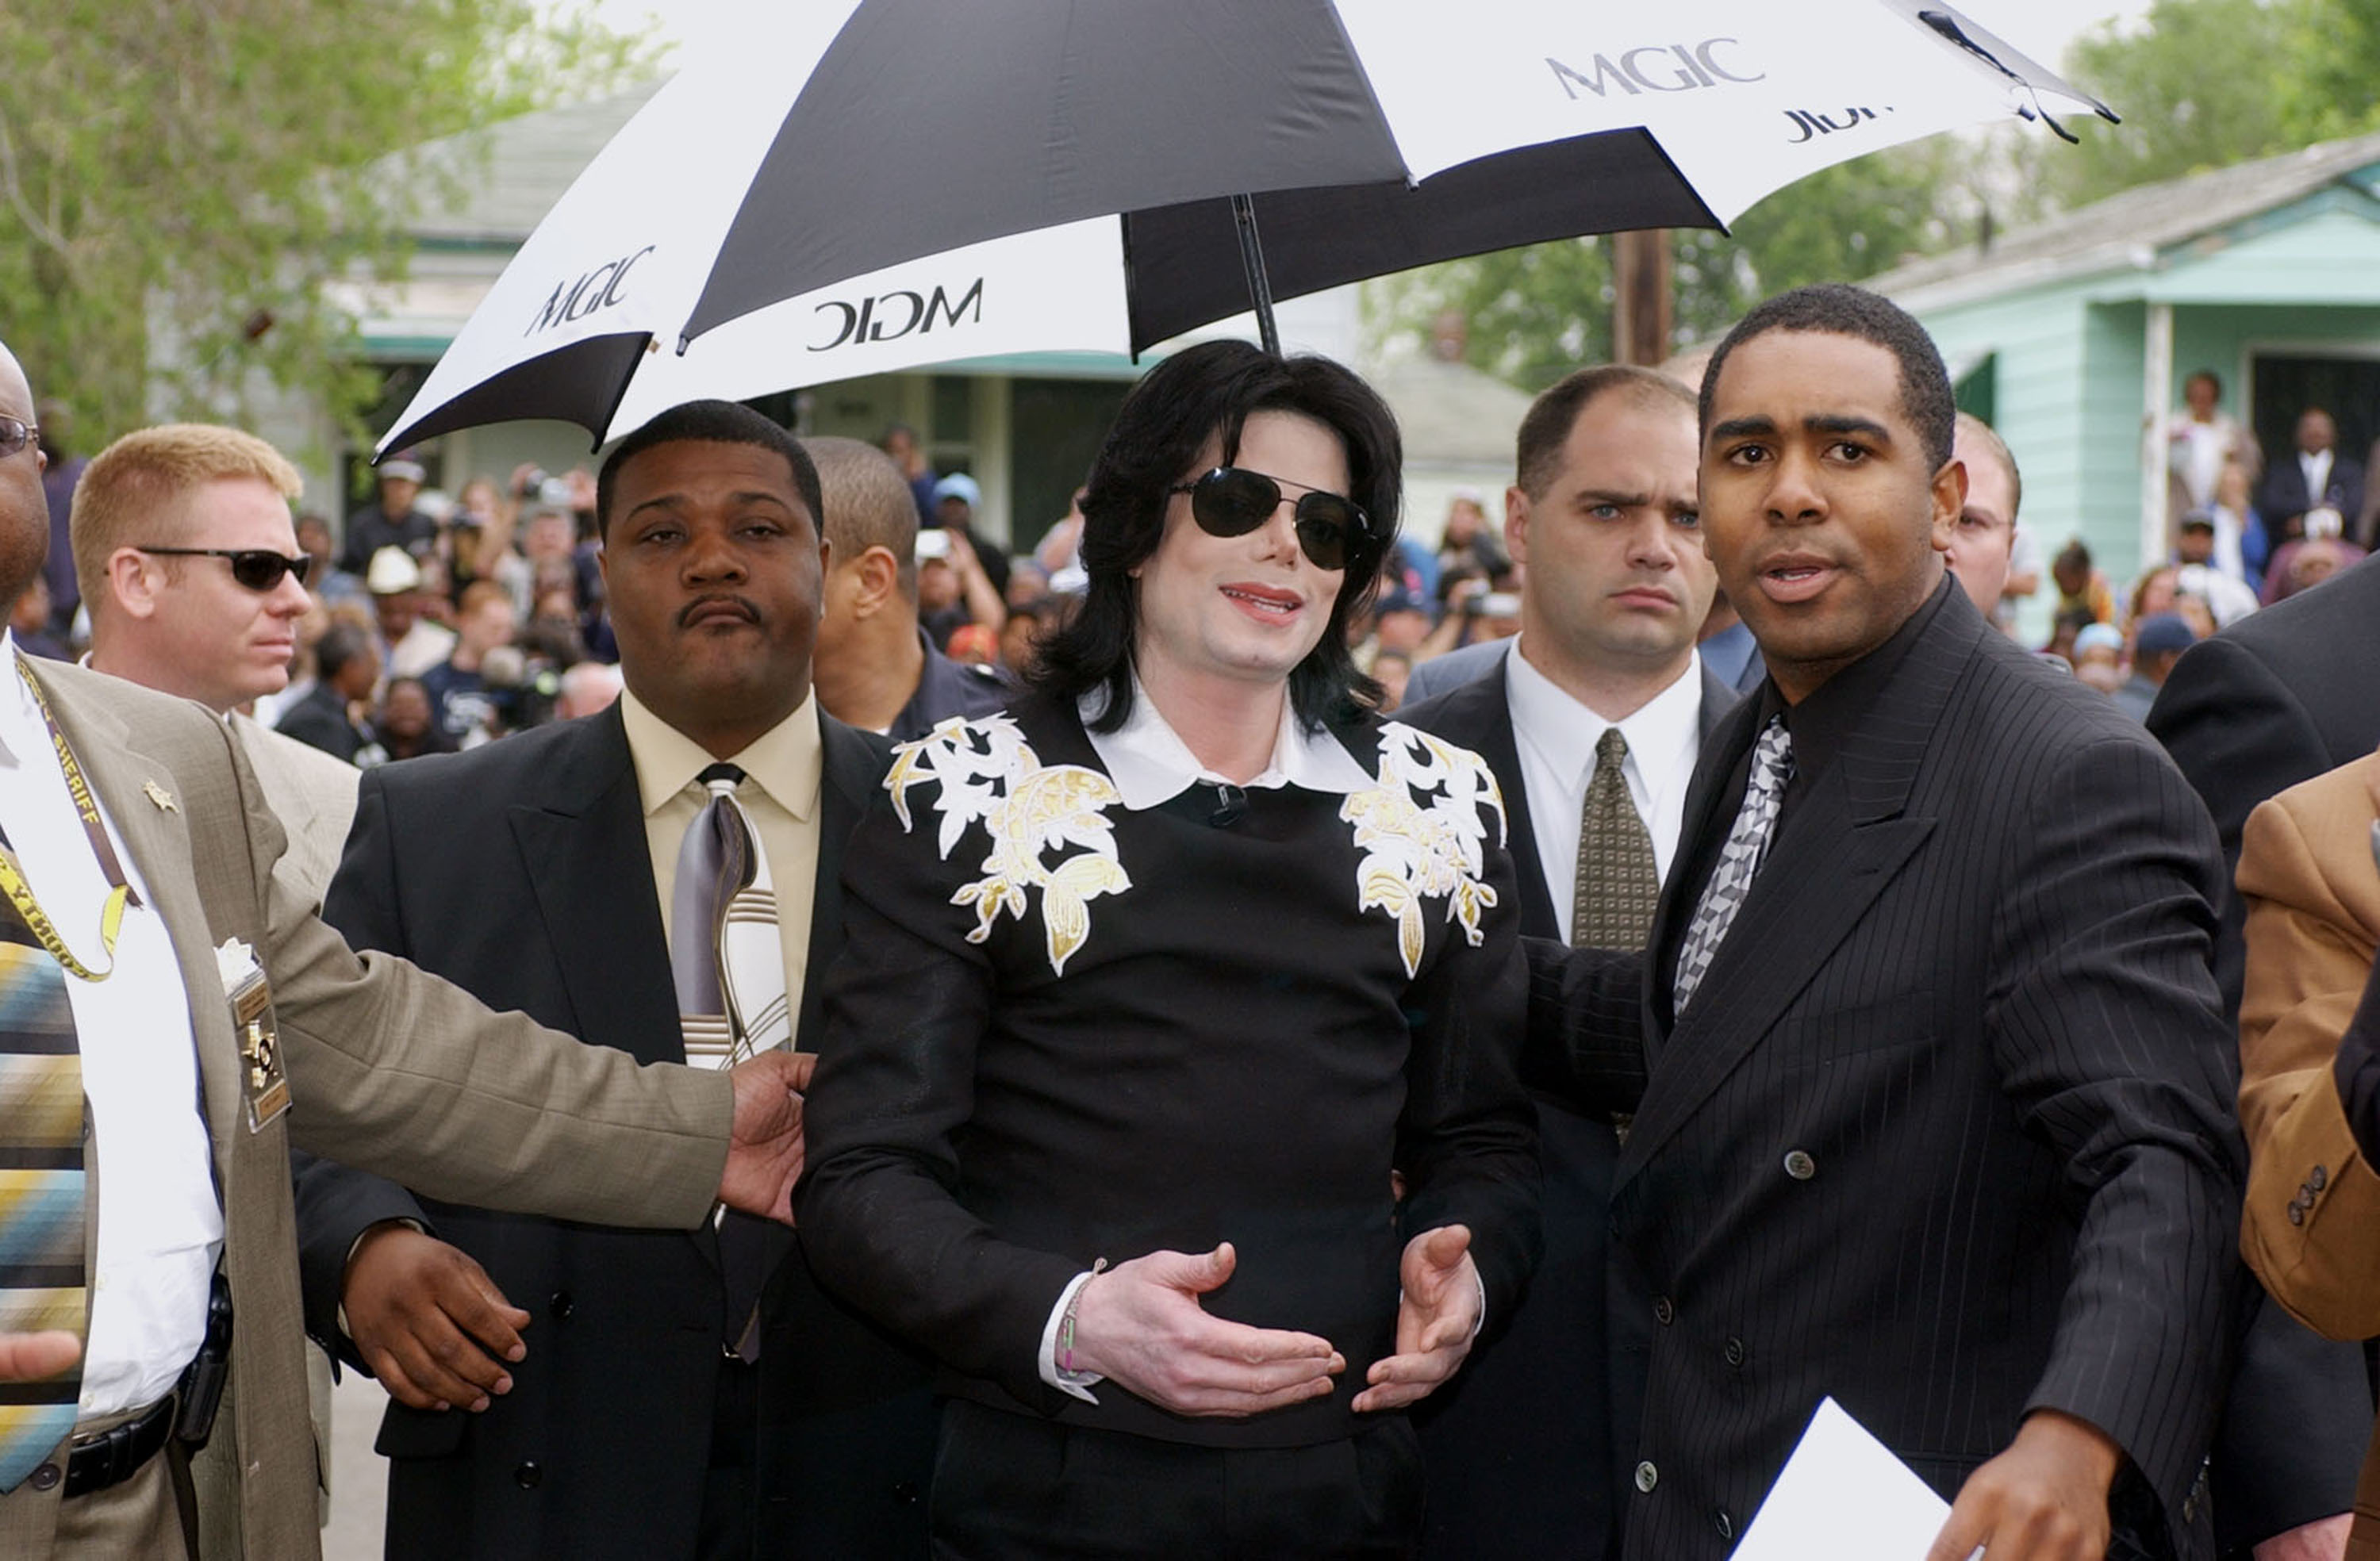 bbaec0552dd GARY, INDIANA - JUNE 11: Singer Michael Jackson greets fans while visiting  City Hall